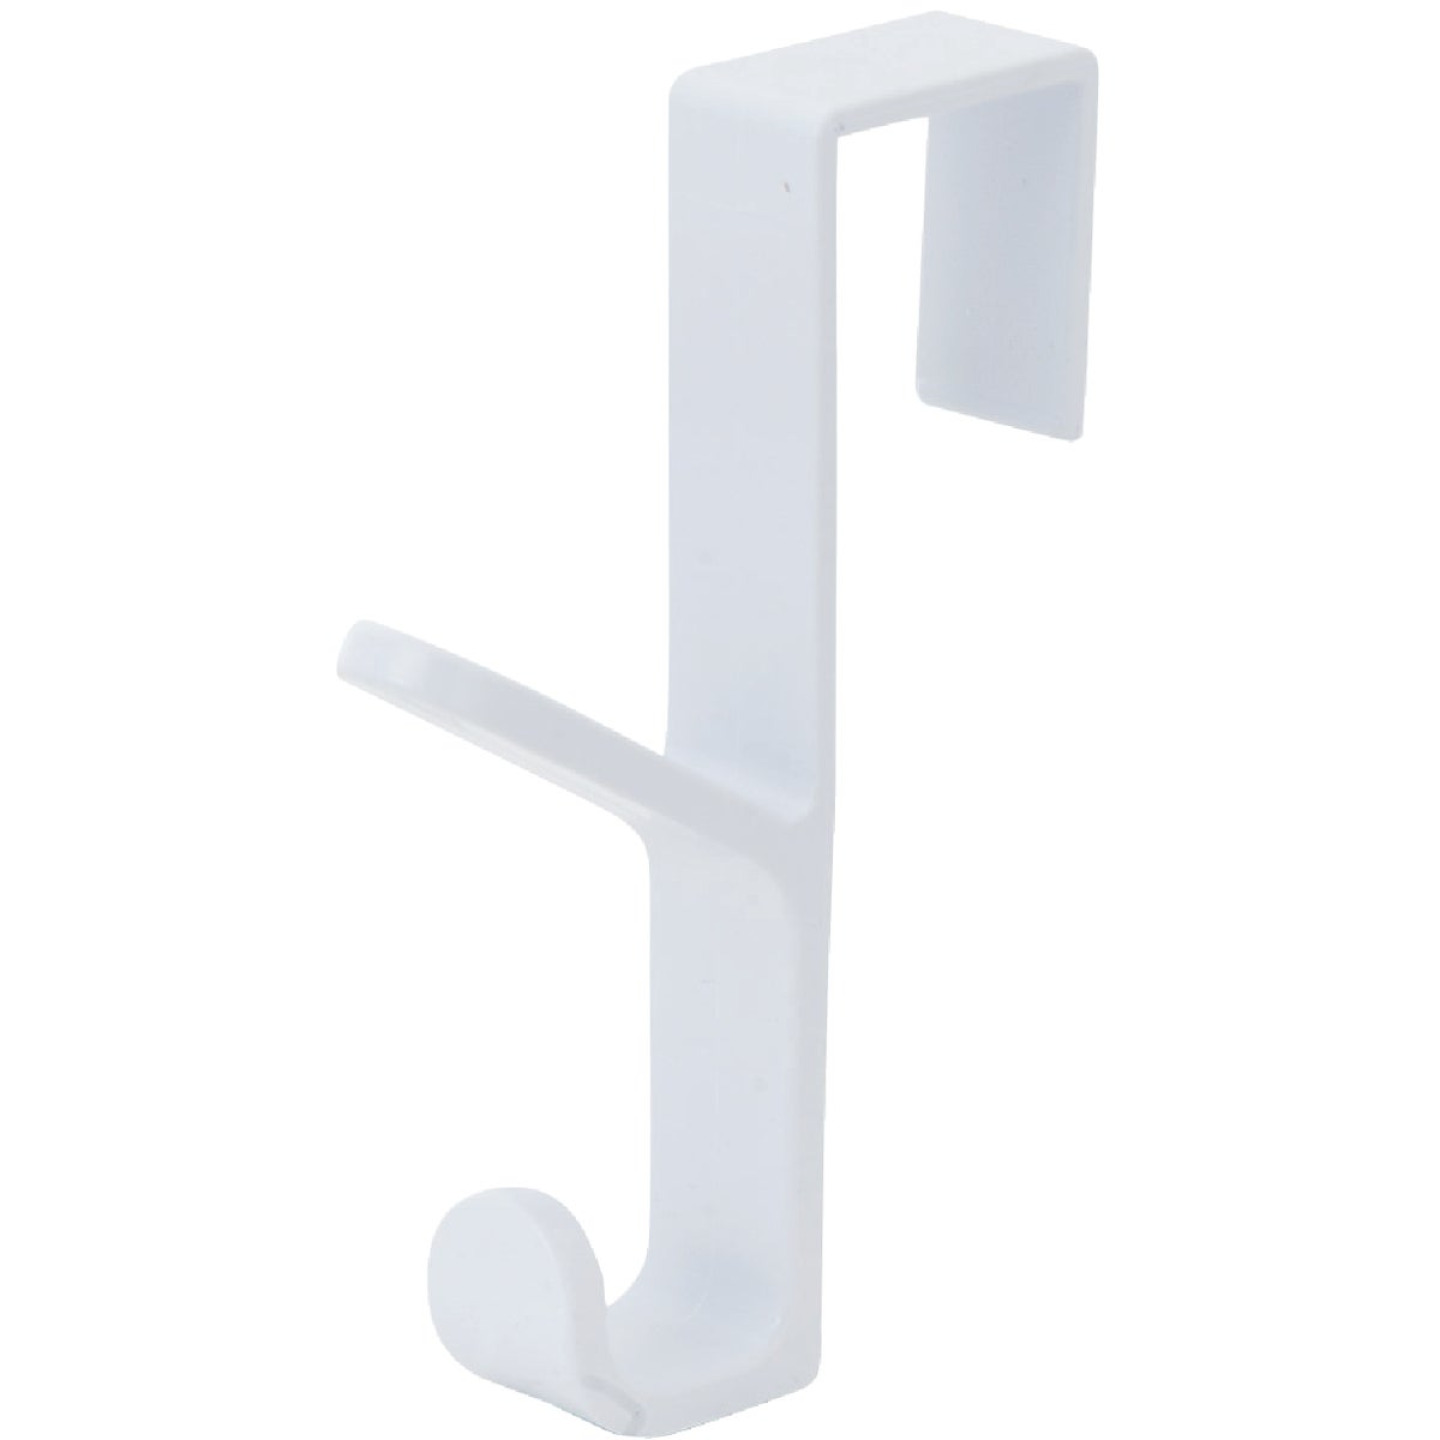 Spectrum White Plastic Over-The-Door Hook, 5-1/2 In. Image 2